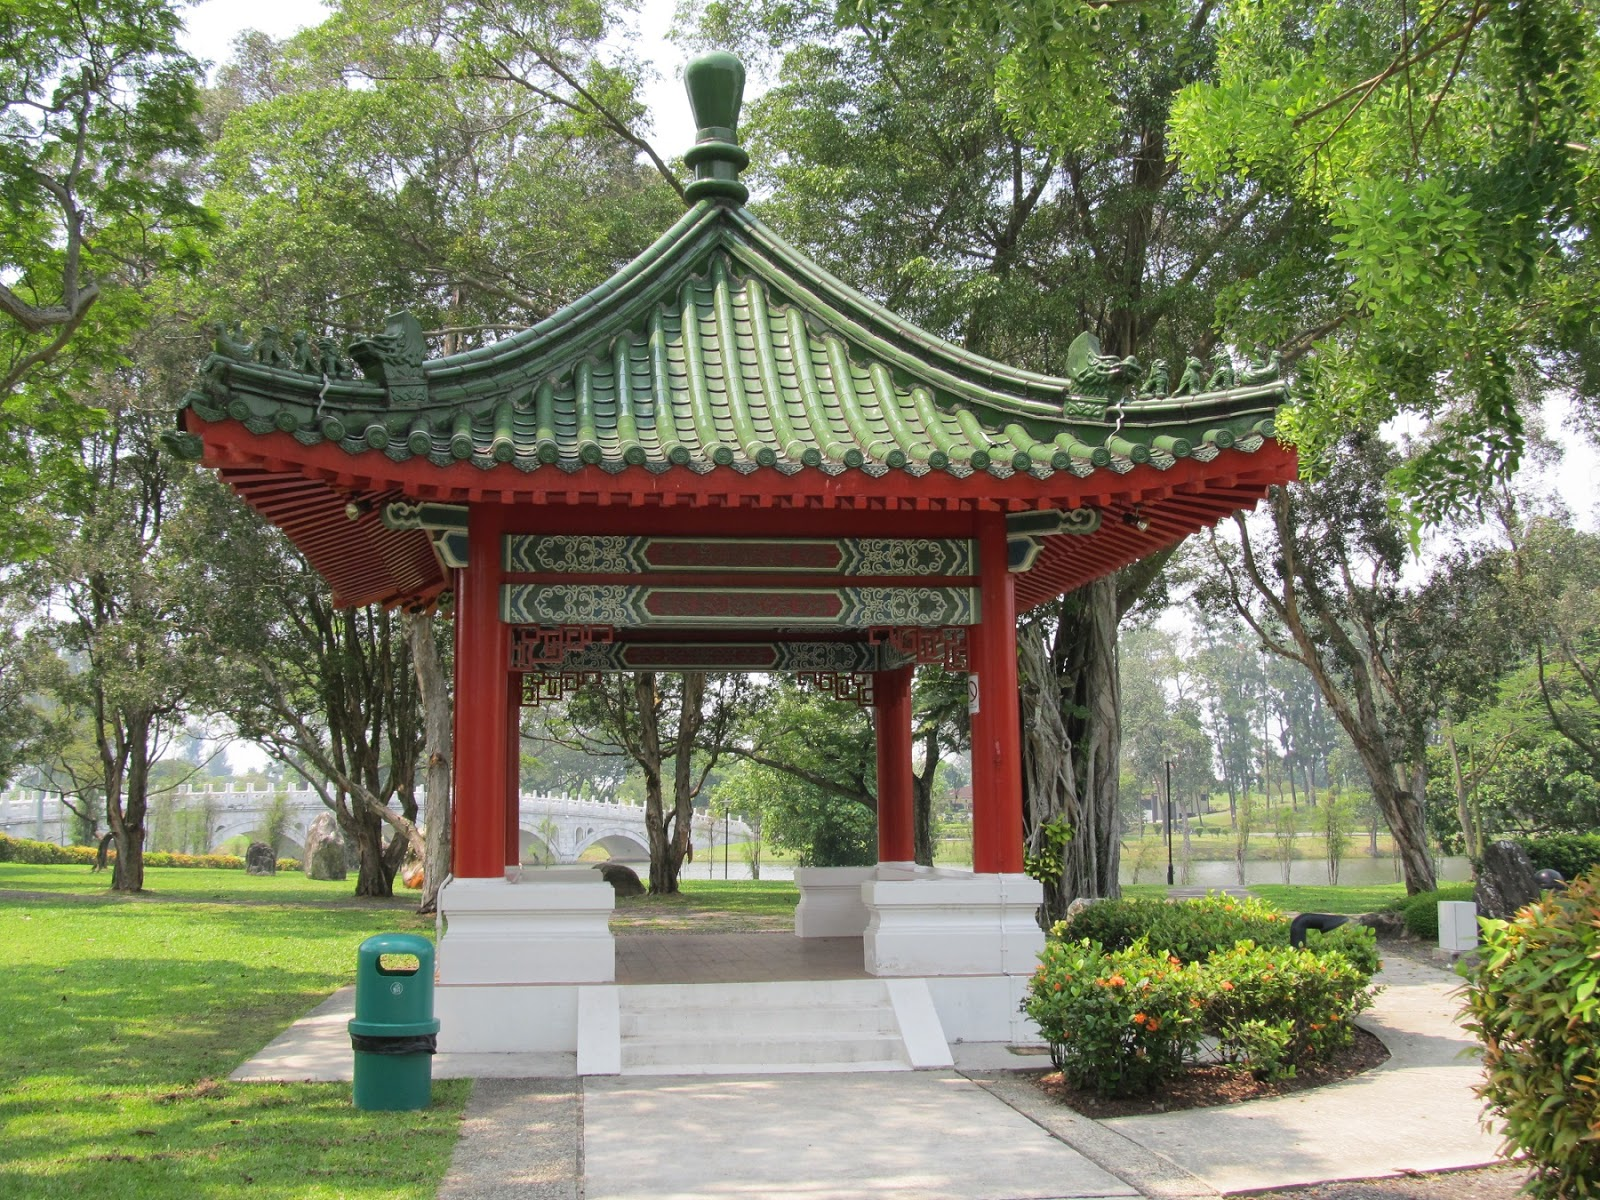 ... The Typical Chinese Style. The Main Arch Building Is Picturesque And  Has Two Courtyards. The Bridge In The Garden Is Designed After The Famous  ...